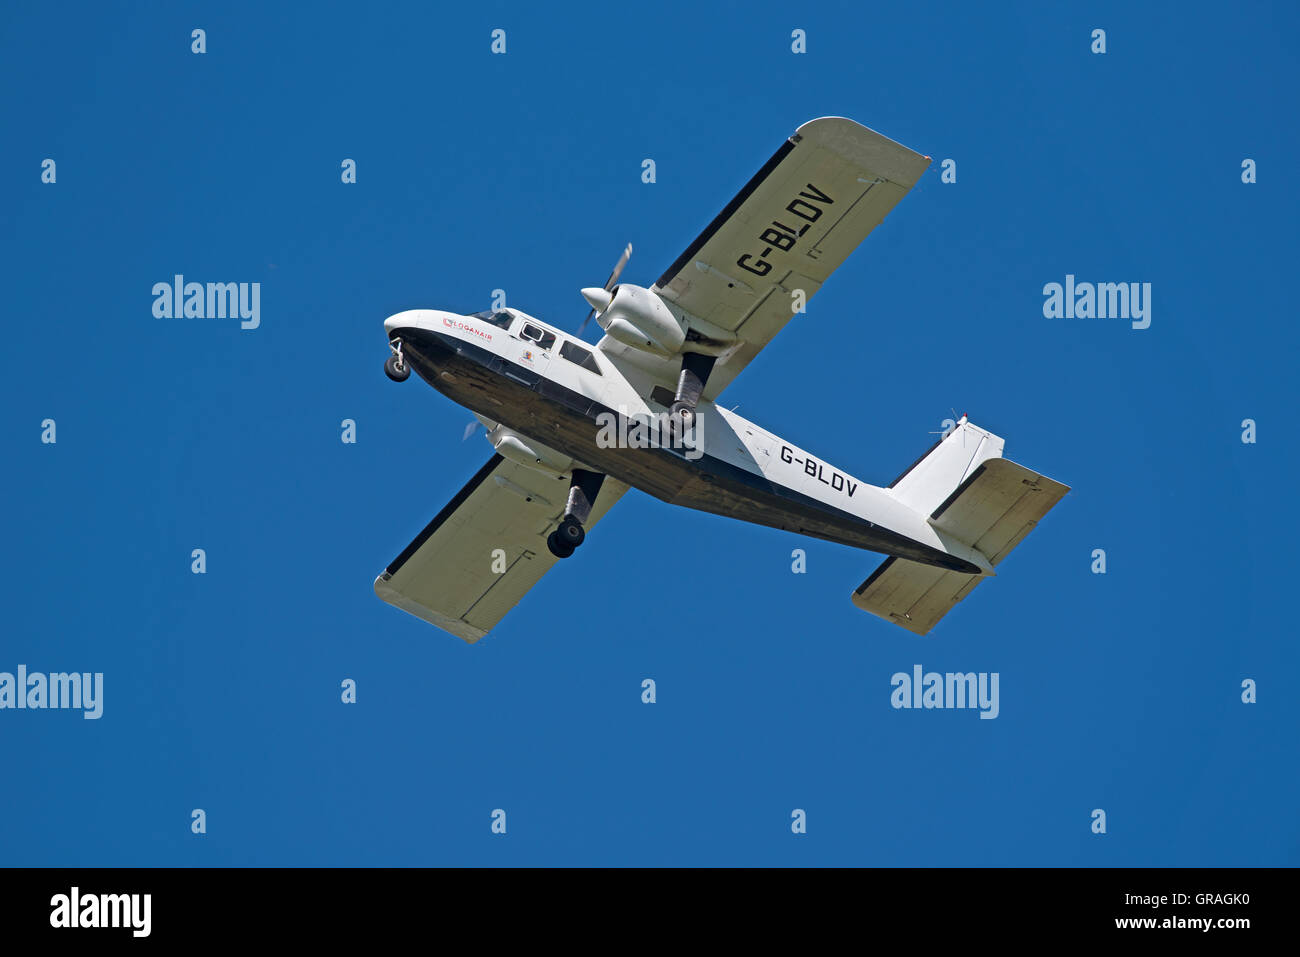 Britten-Norman BN2B-26 Islander twin engine light propellor aircraft operated by Loganzir in Scotland.  SCO 11,228. - Stock Image